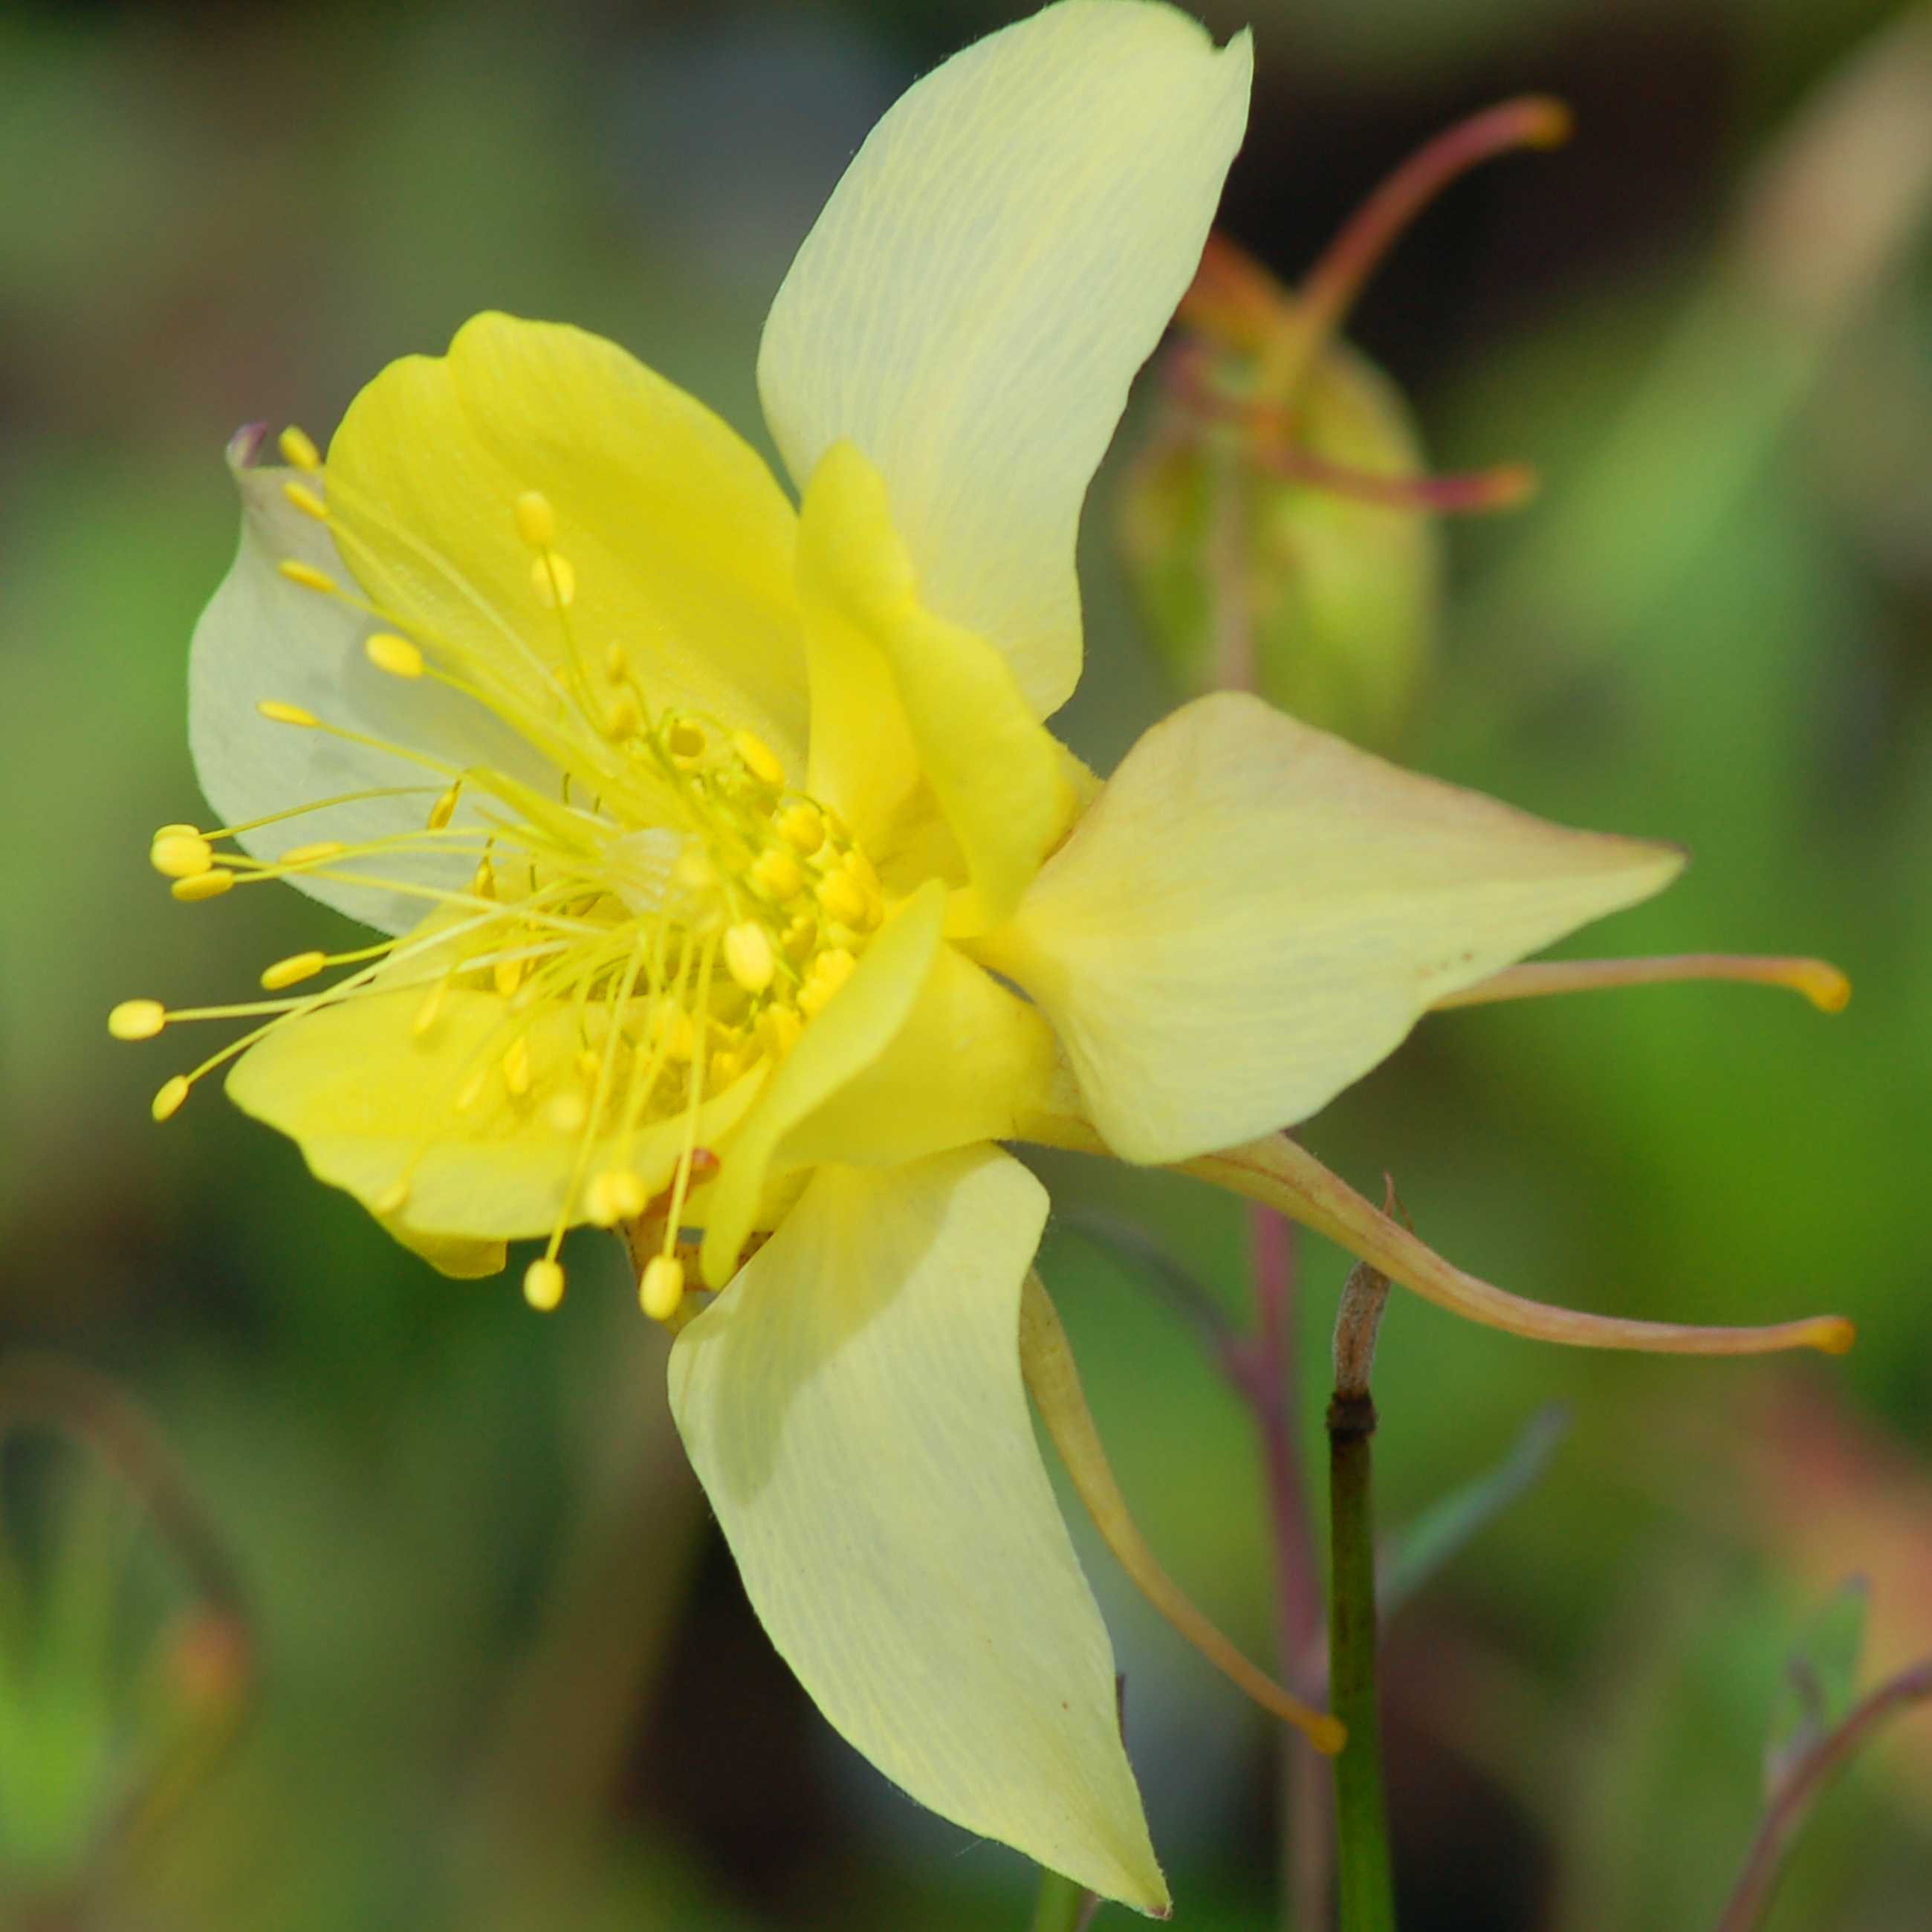 Image of yellow columbine. Columbine comes in many colors, including yellow.